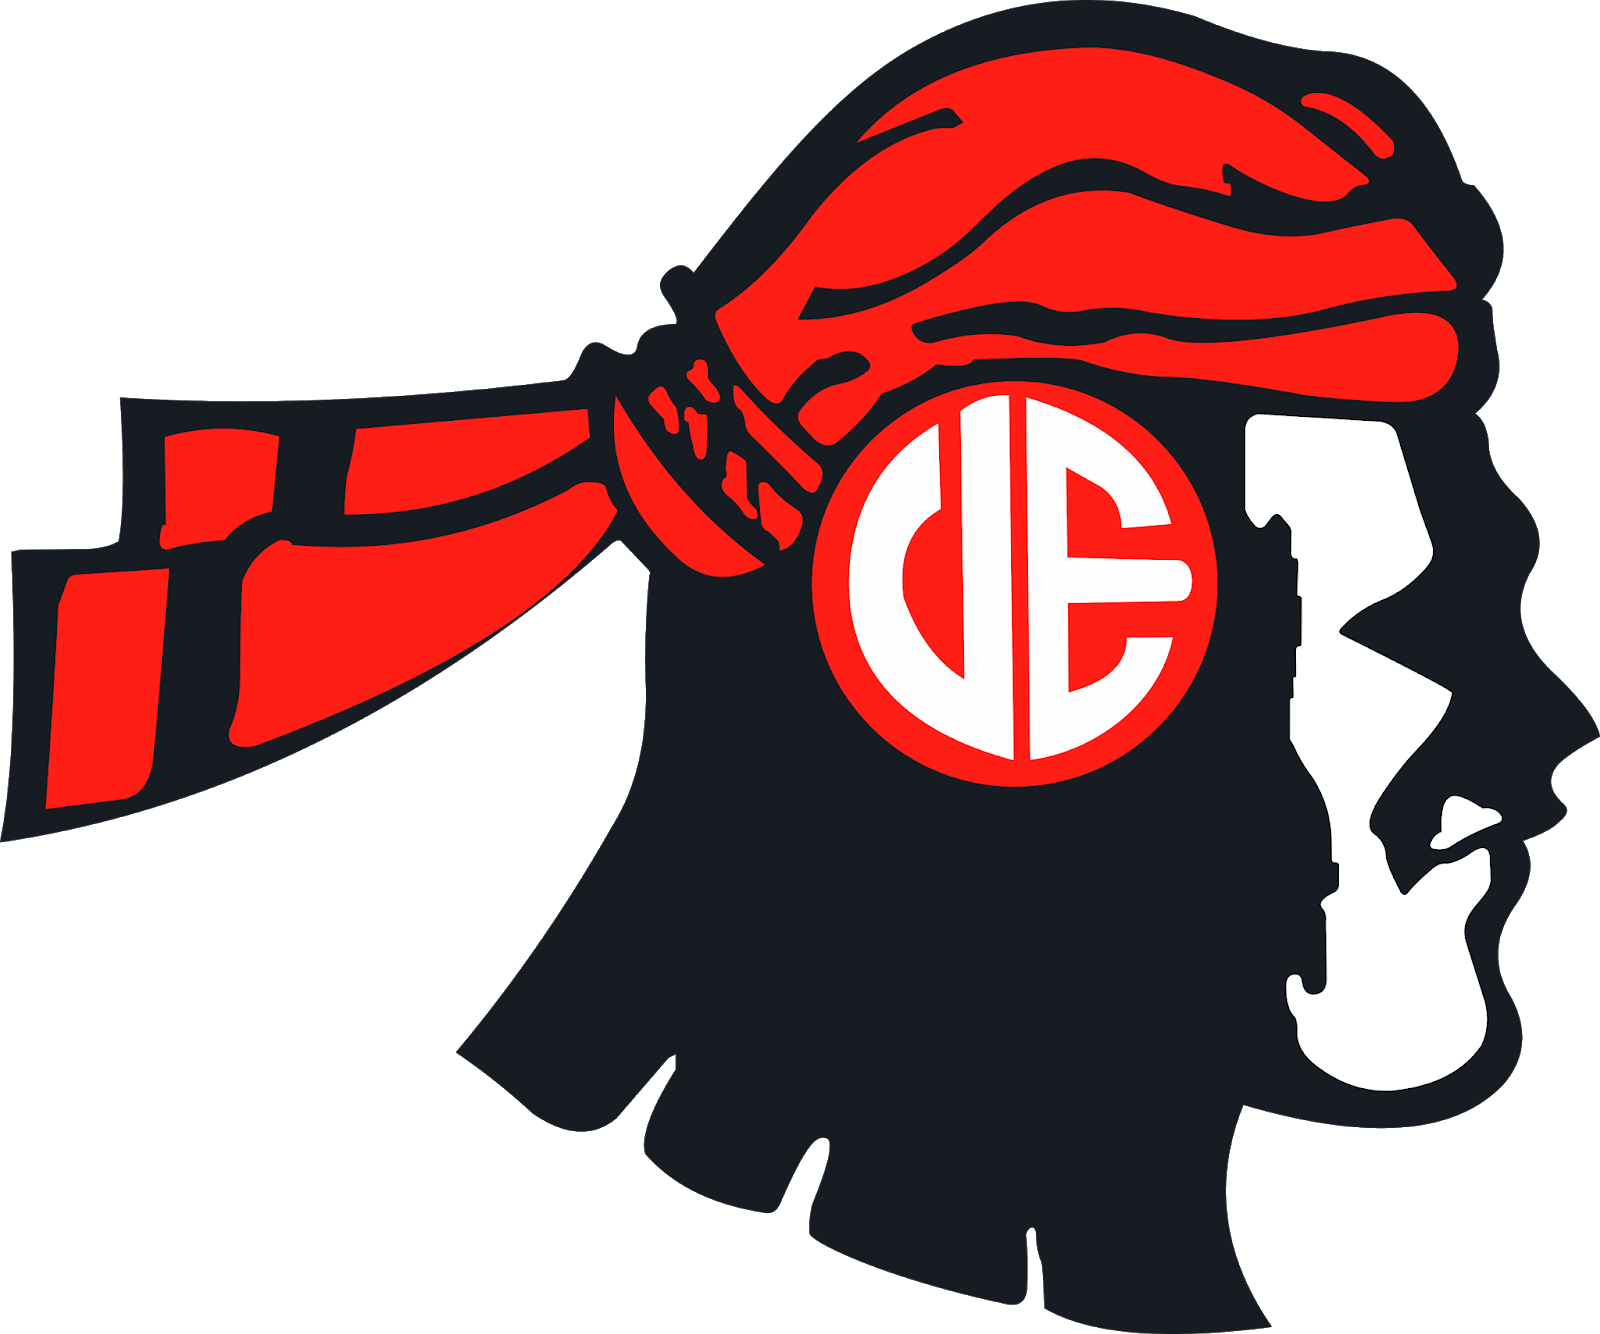 The Red Warriors Logo.